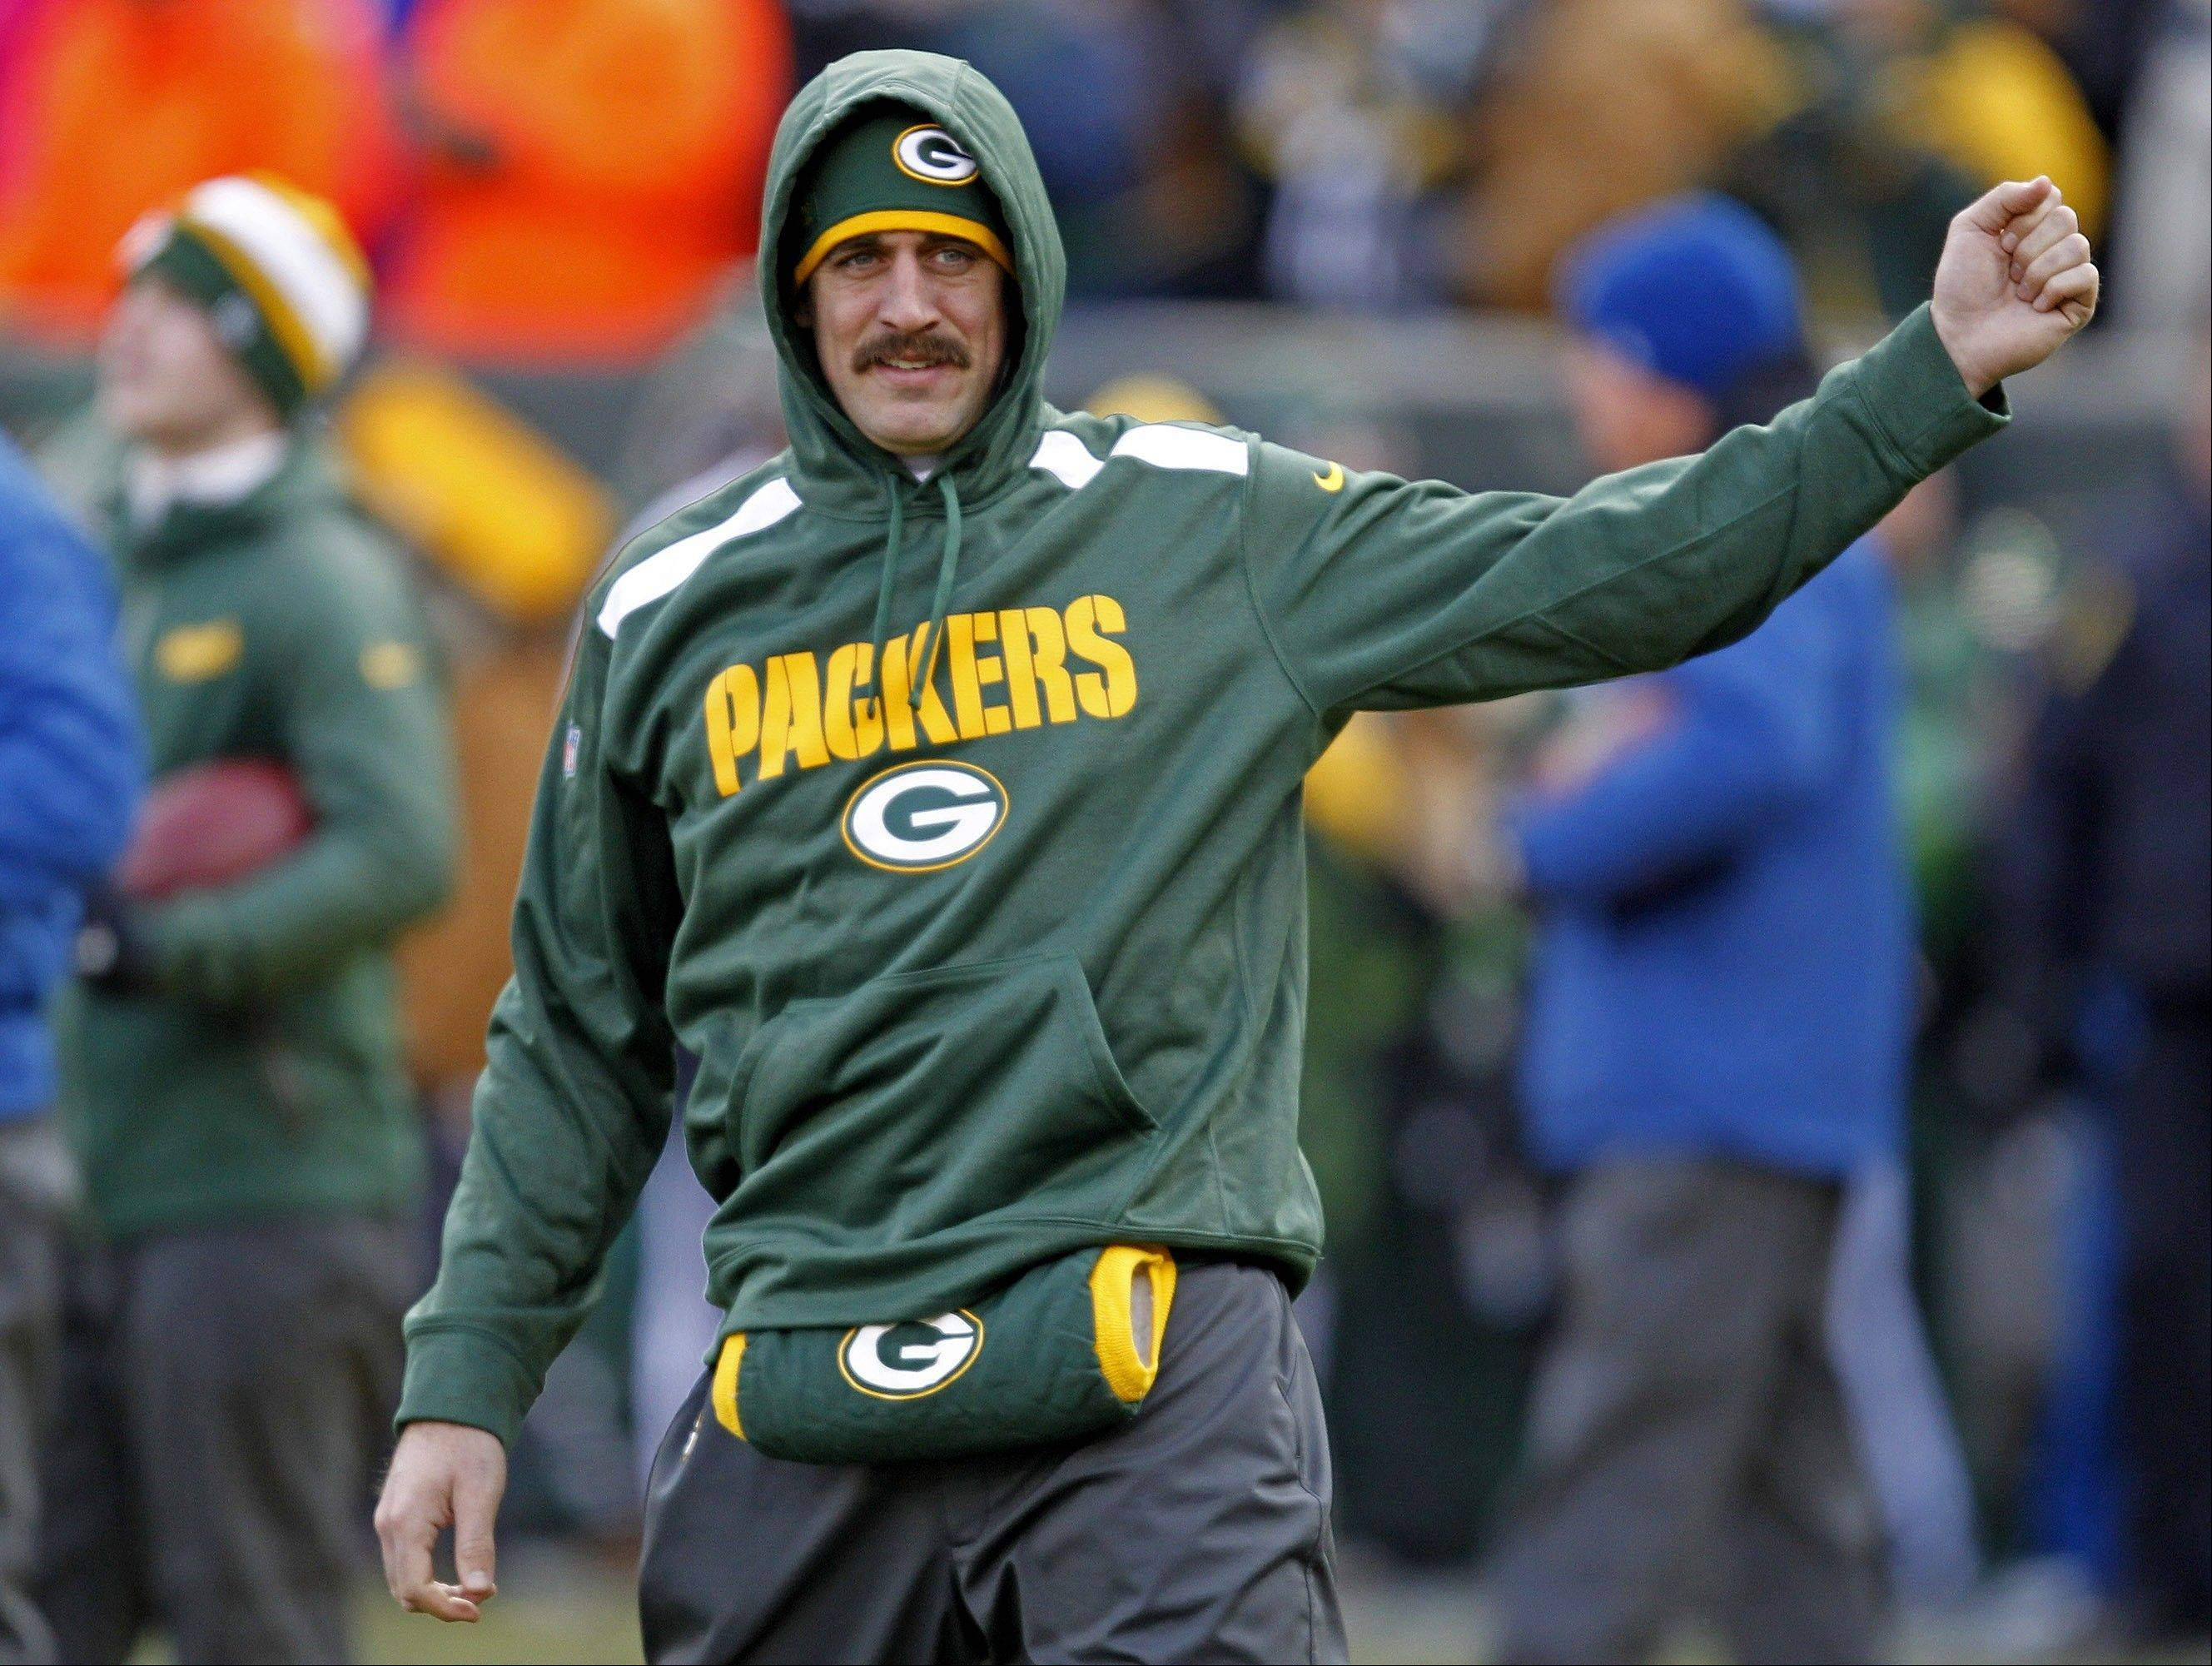 Green Bay Packers quarterback Aaron Rodgers will return to start Sunday�s game for the NFC North title against the Bears.